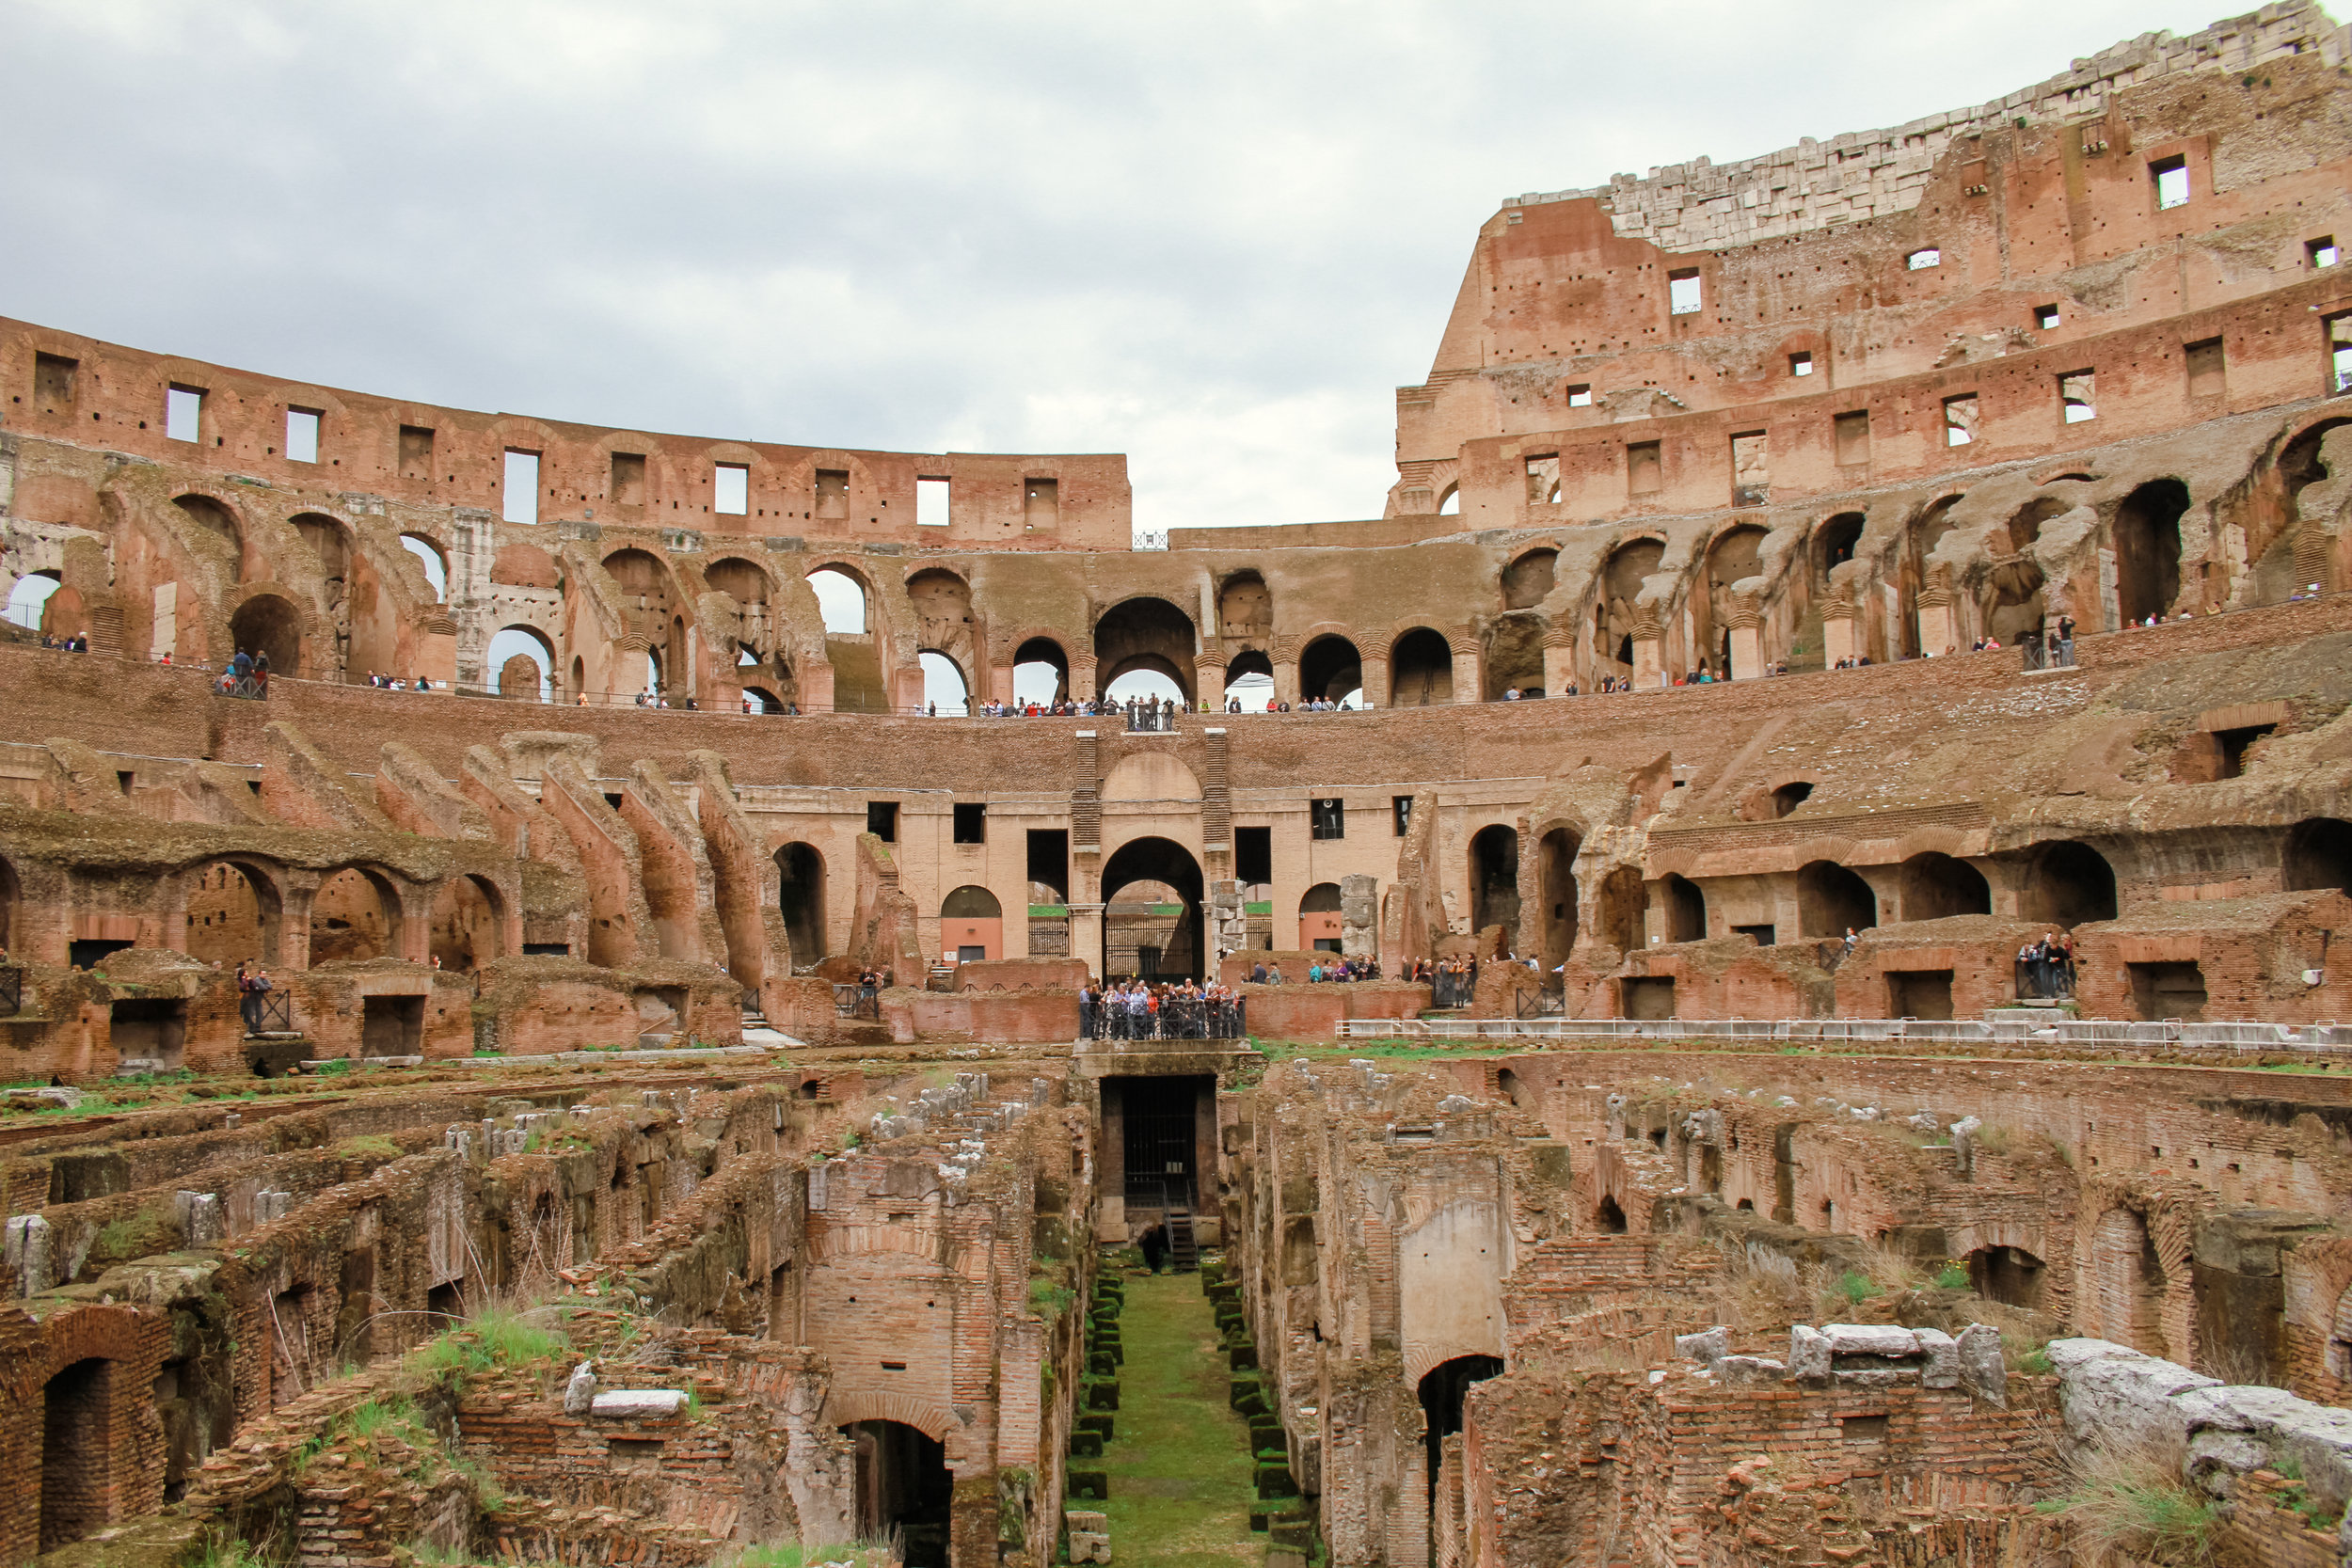 The Colosseum is one of Rome's greatest places to visit.